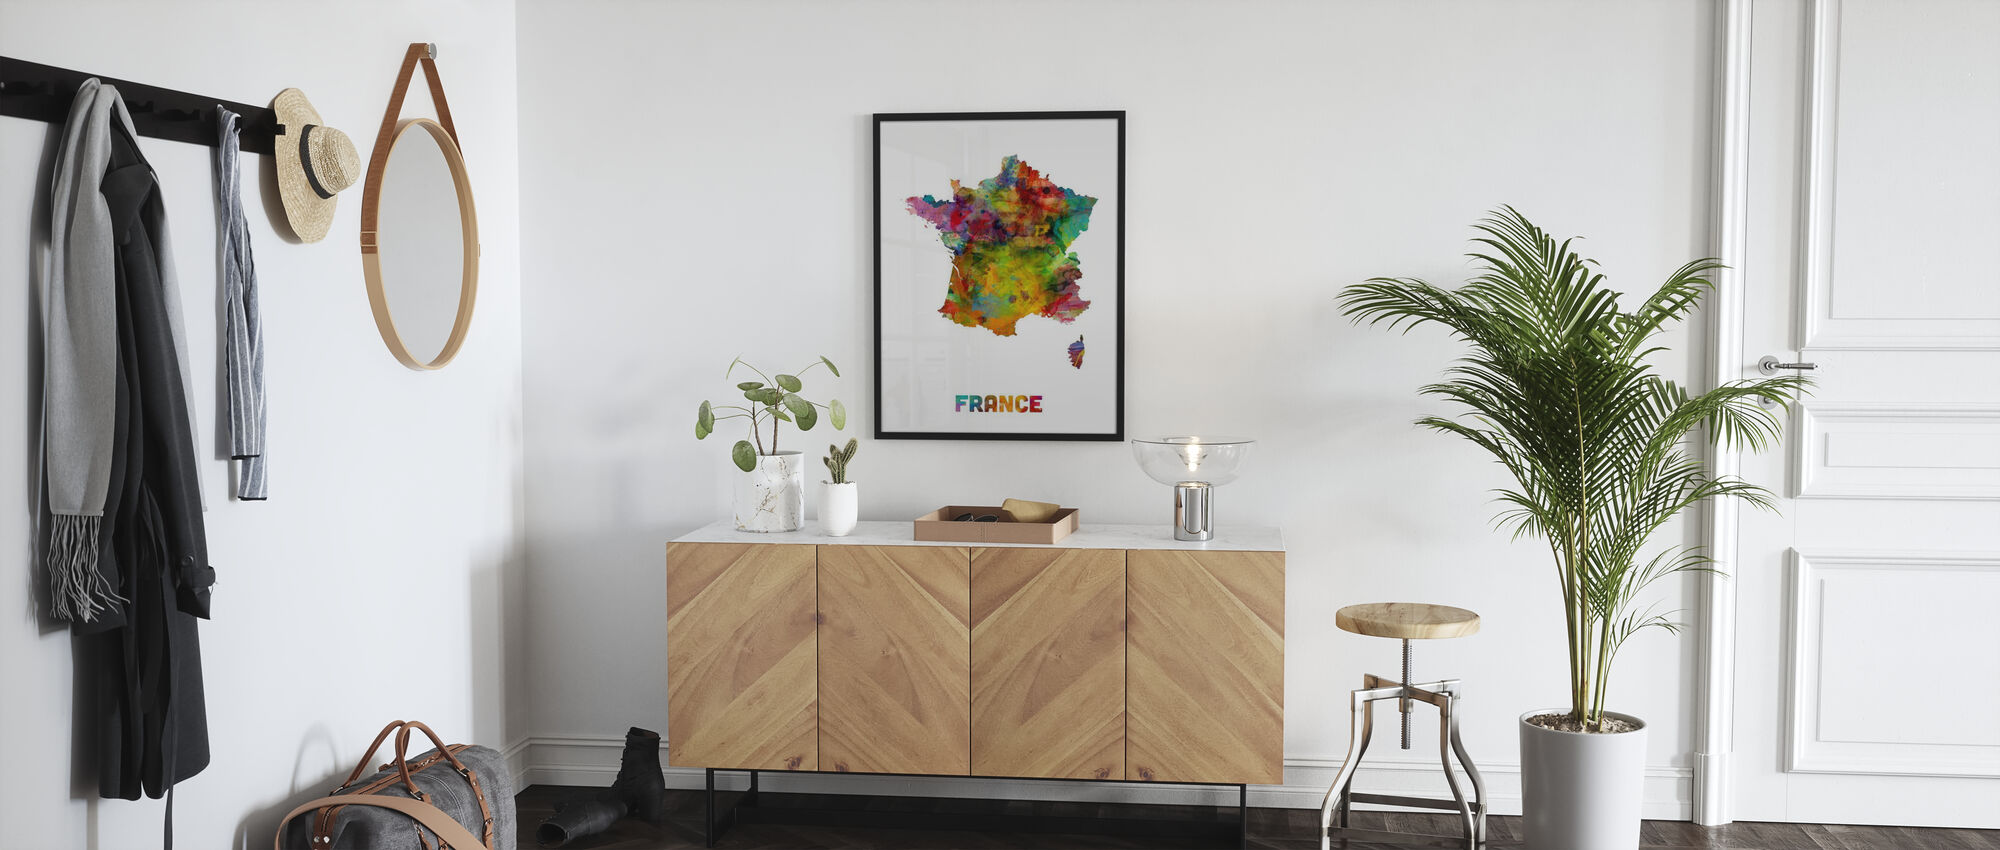 France Watercolor Map - Poster - Hallway